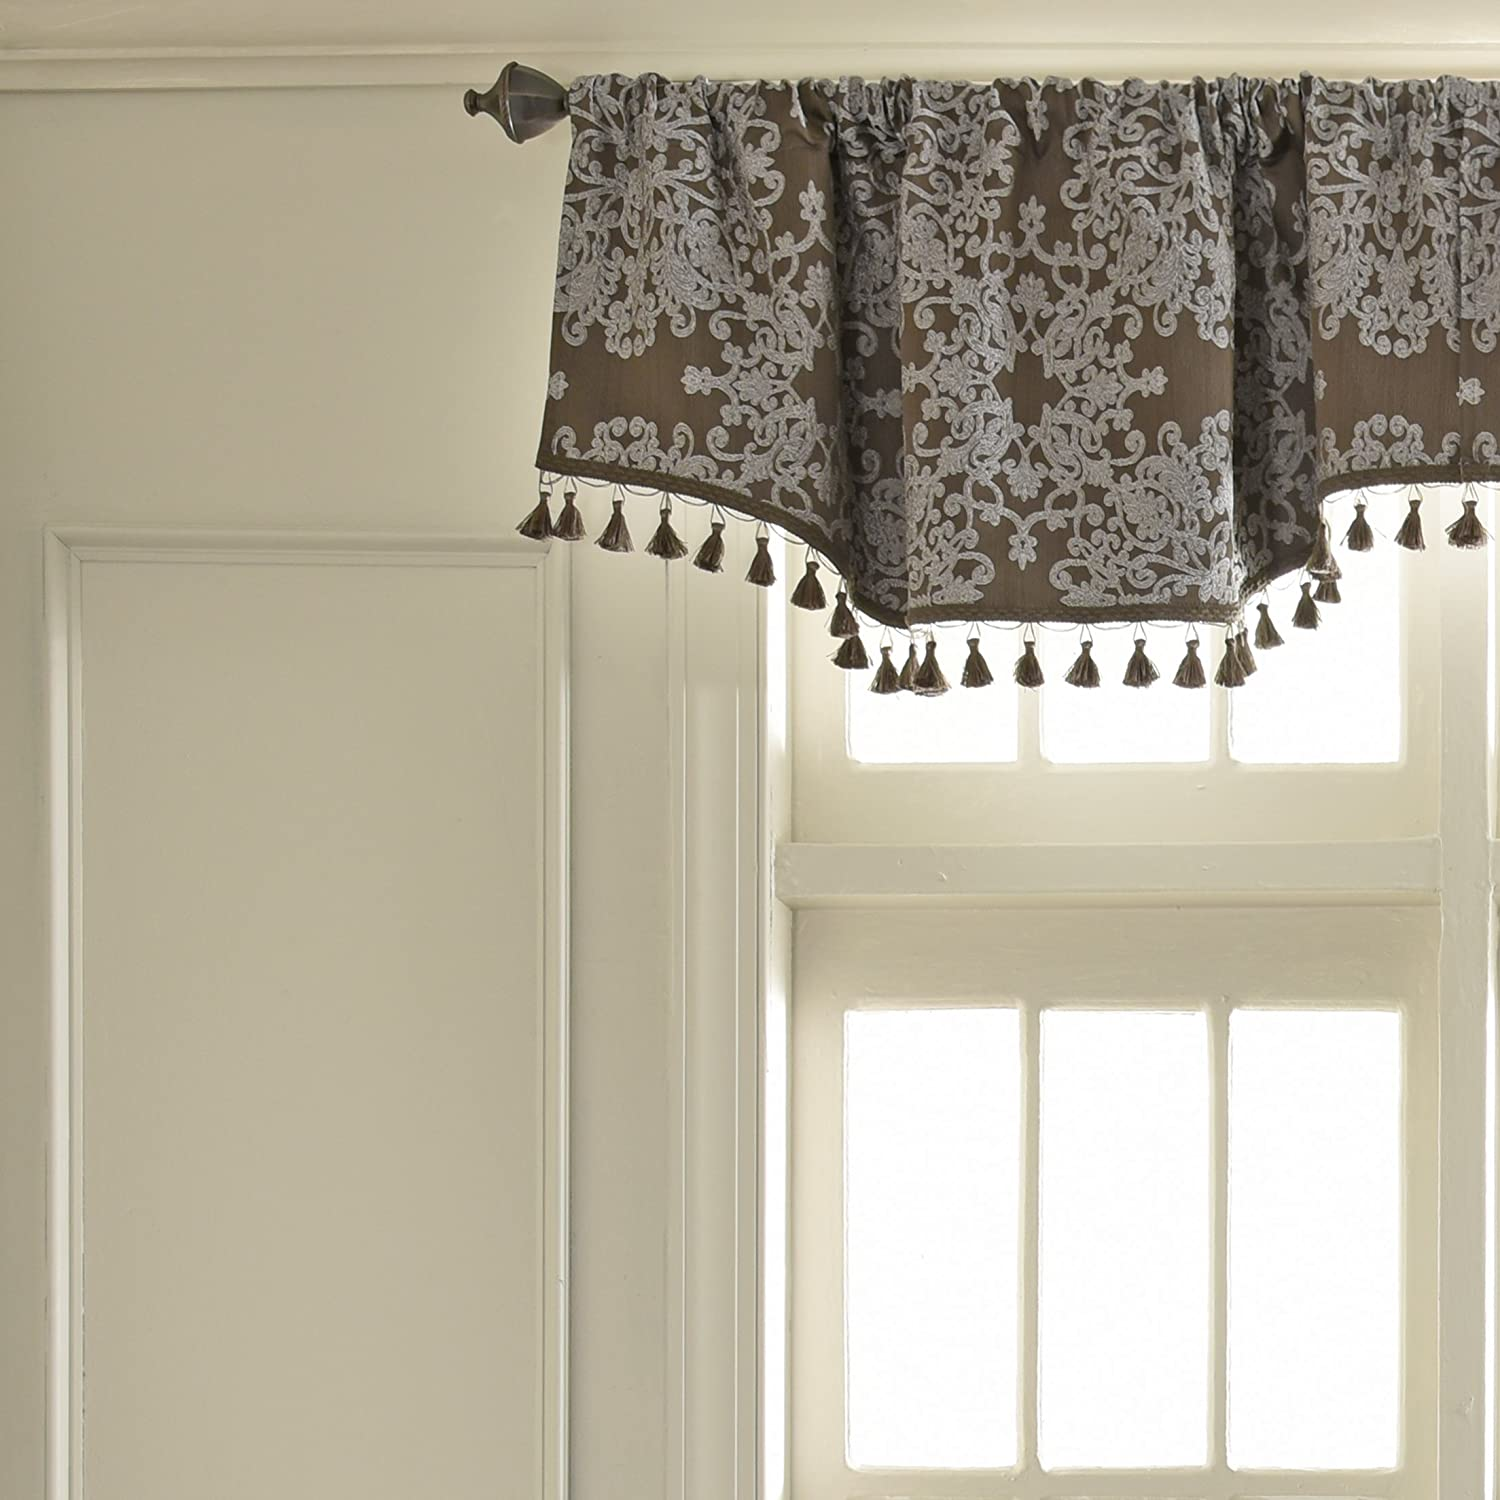 Peacock 48 x 18 Beautyrest Alexina Jacquard Grommet Top Curtains for Kitchen and Living Room